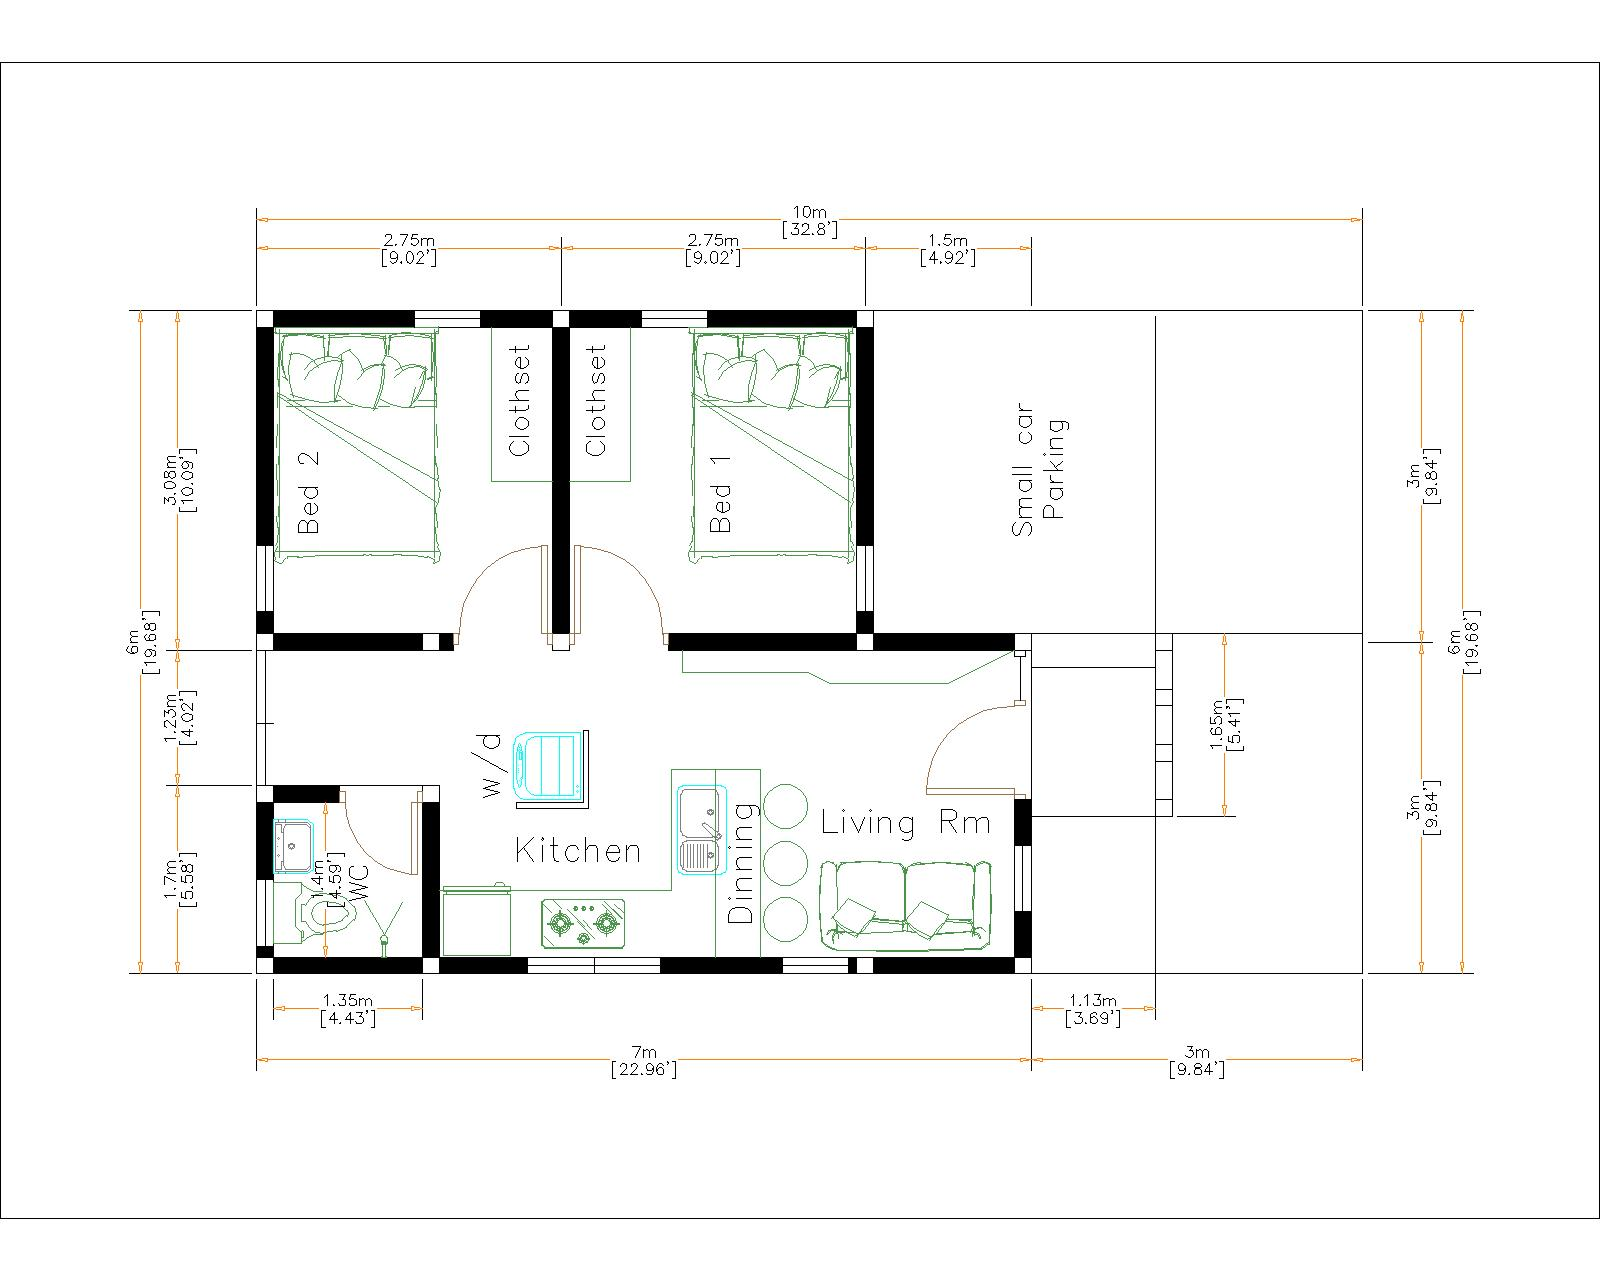 Small Cozy Homes 6x7 Meter 20x23 Feet 2 Bed layout floor plan